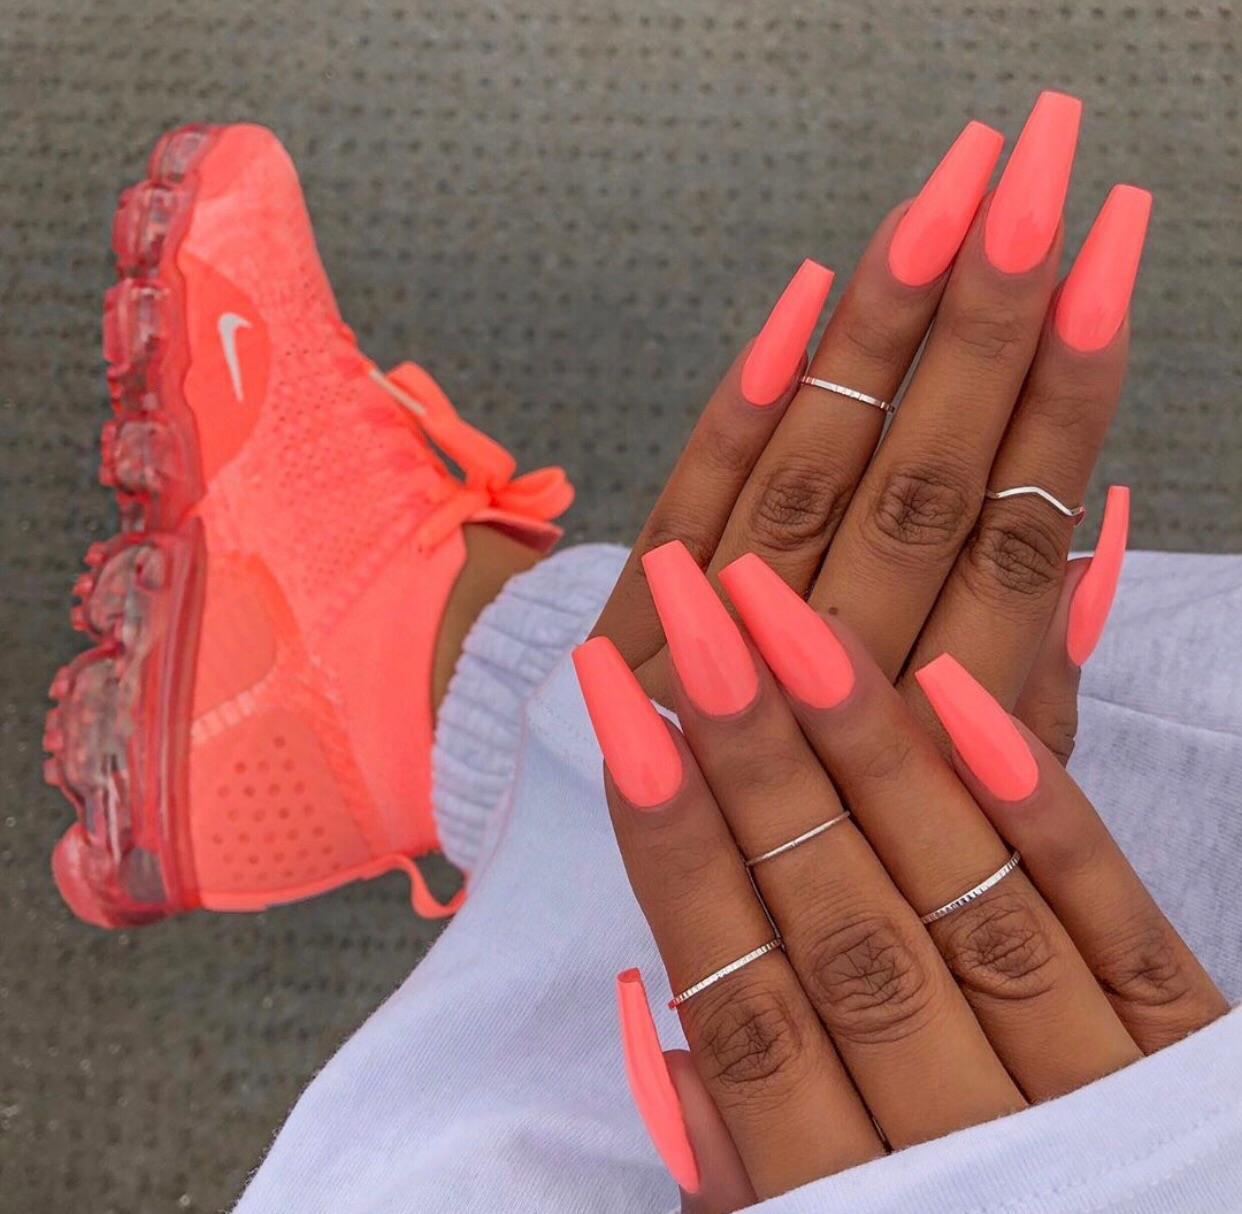 sneakers, claws, shoes and neon